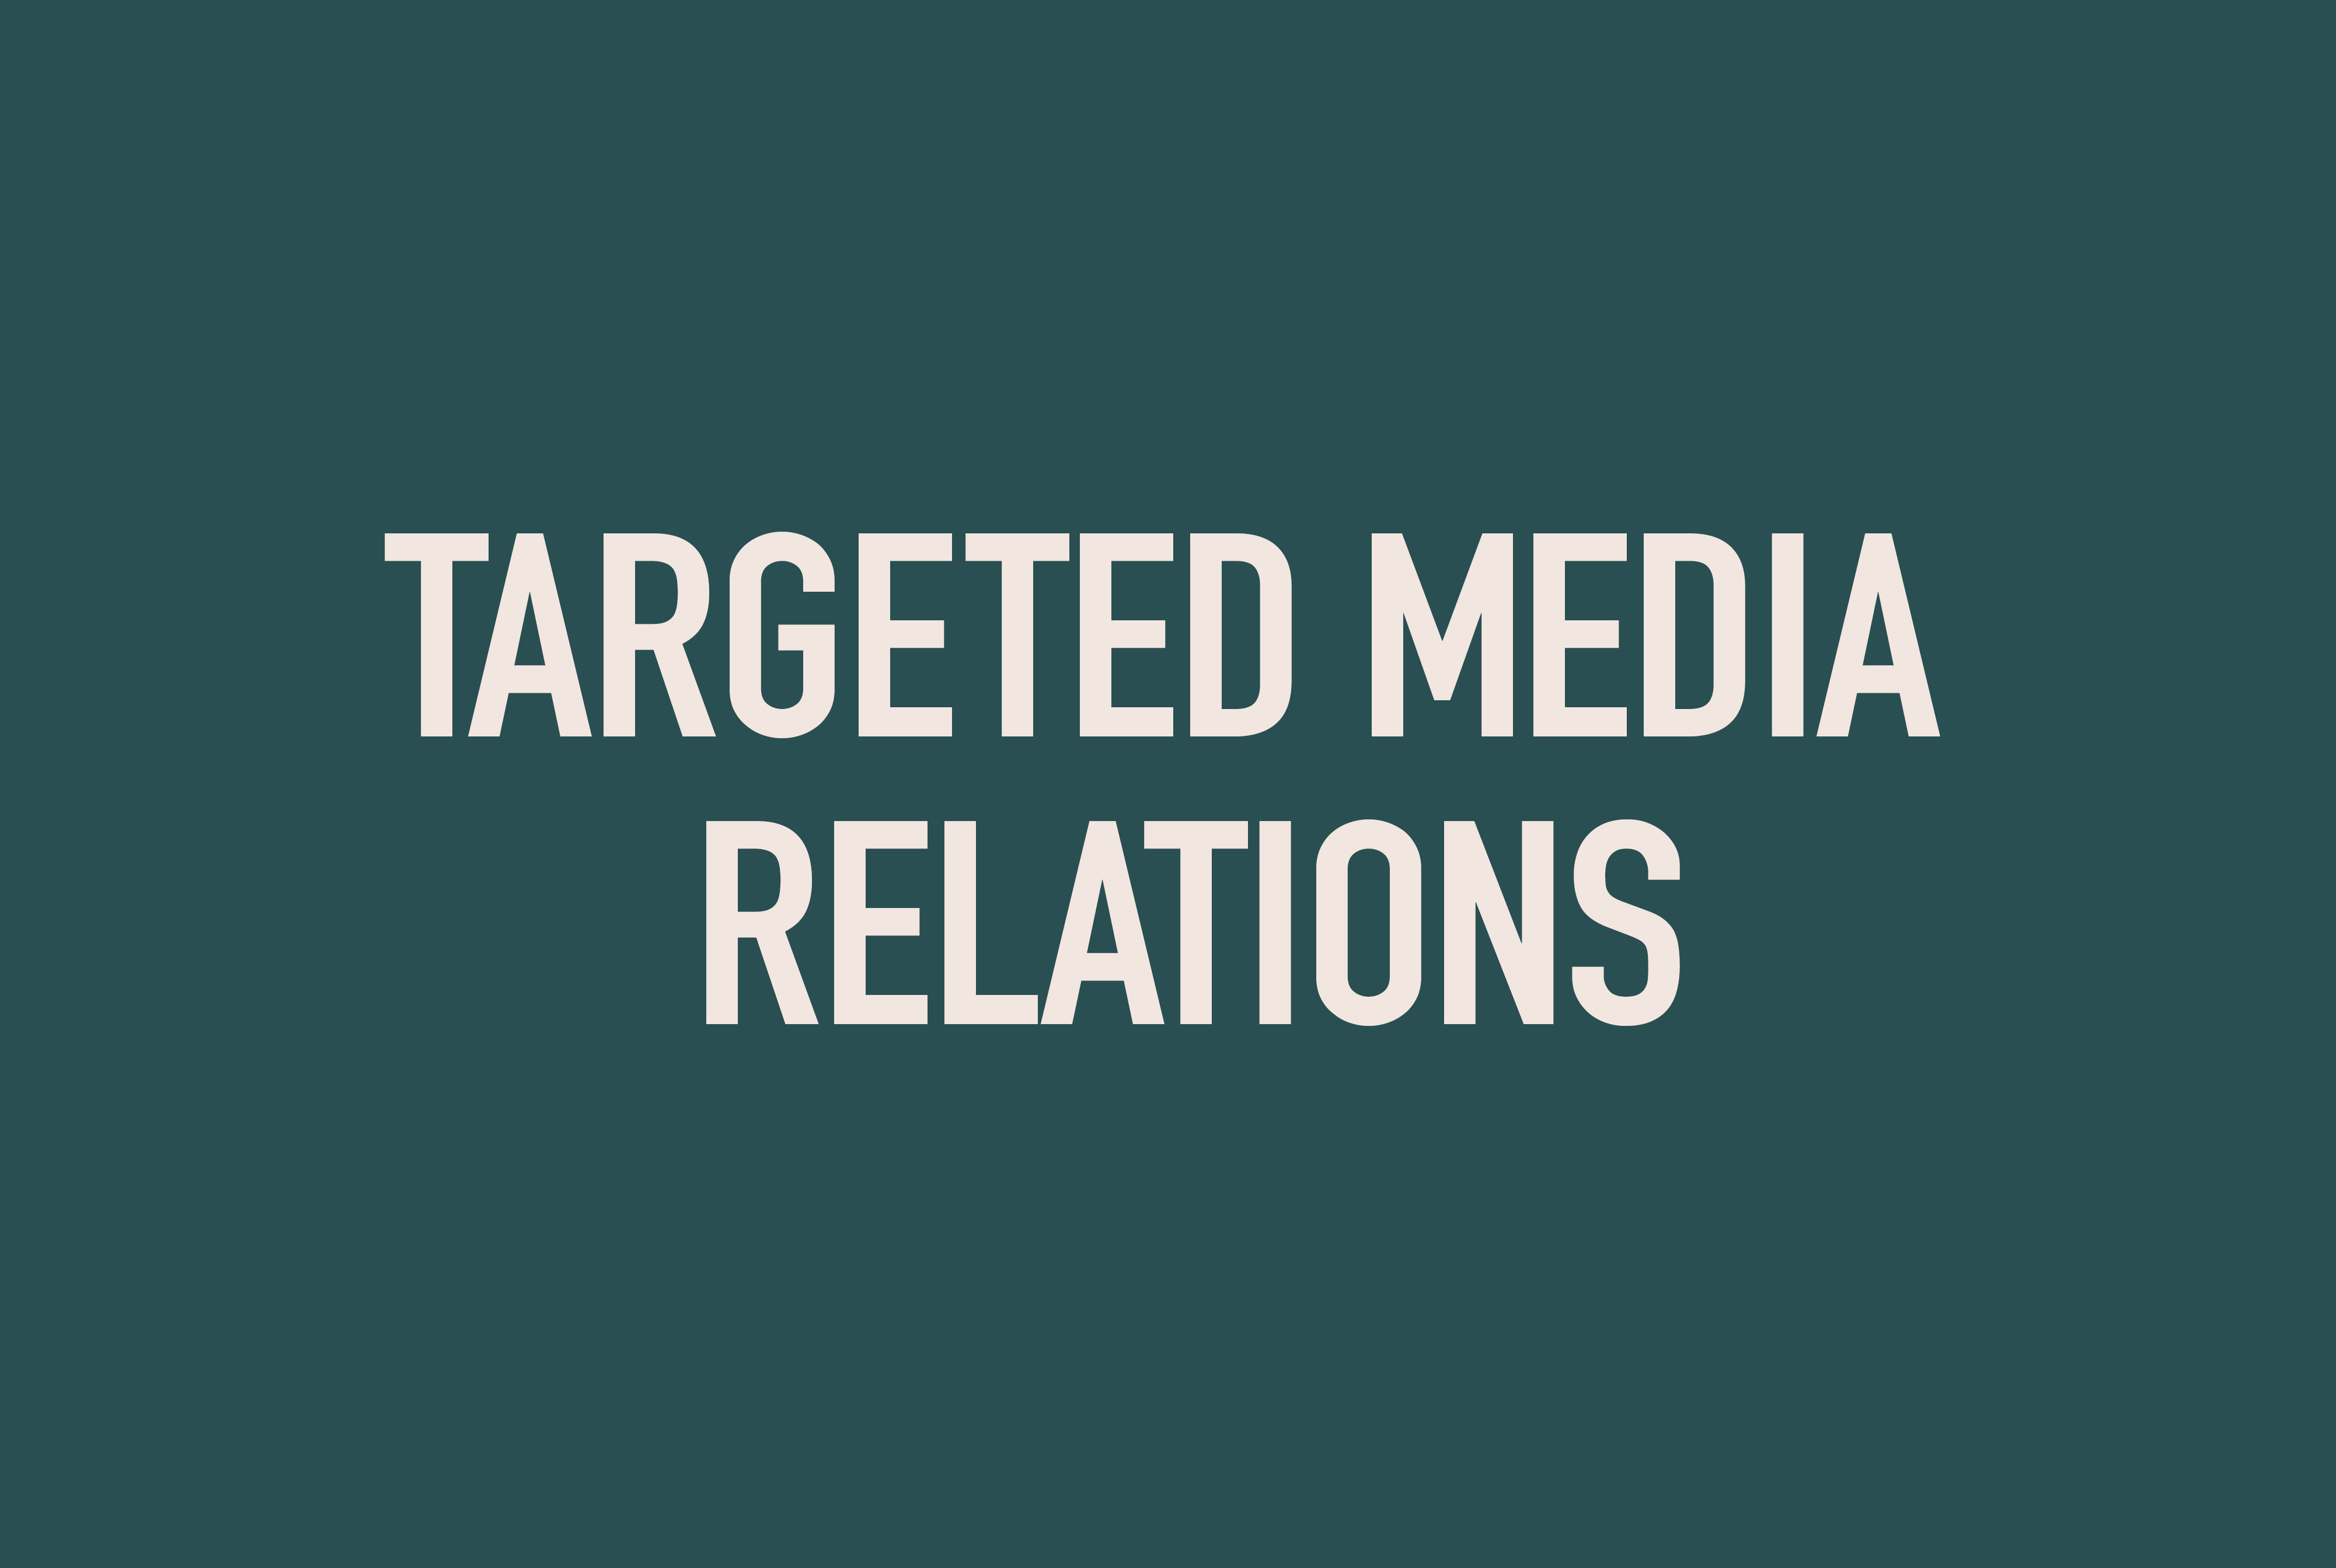 targeted_media_relations